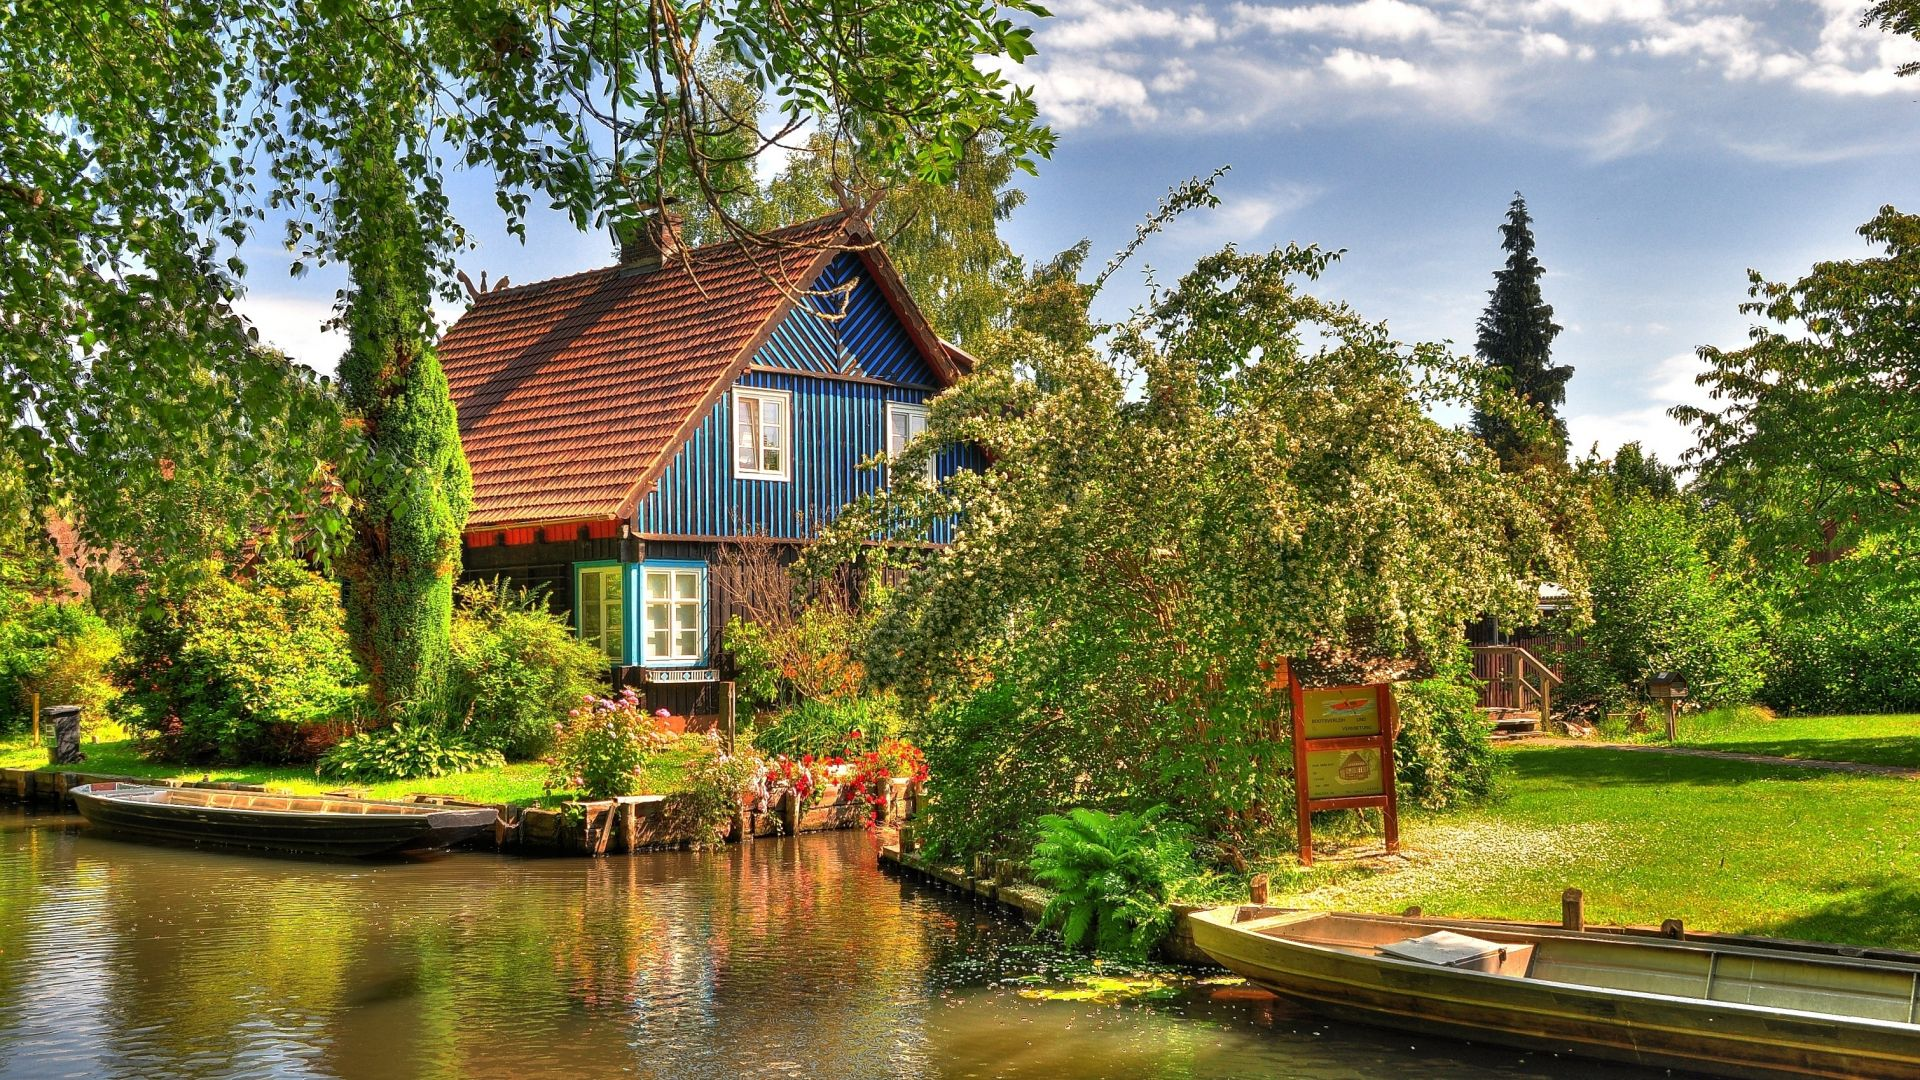 Spreewald: Farmhouse on the Spree in the Lehde open air museum